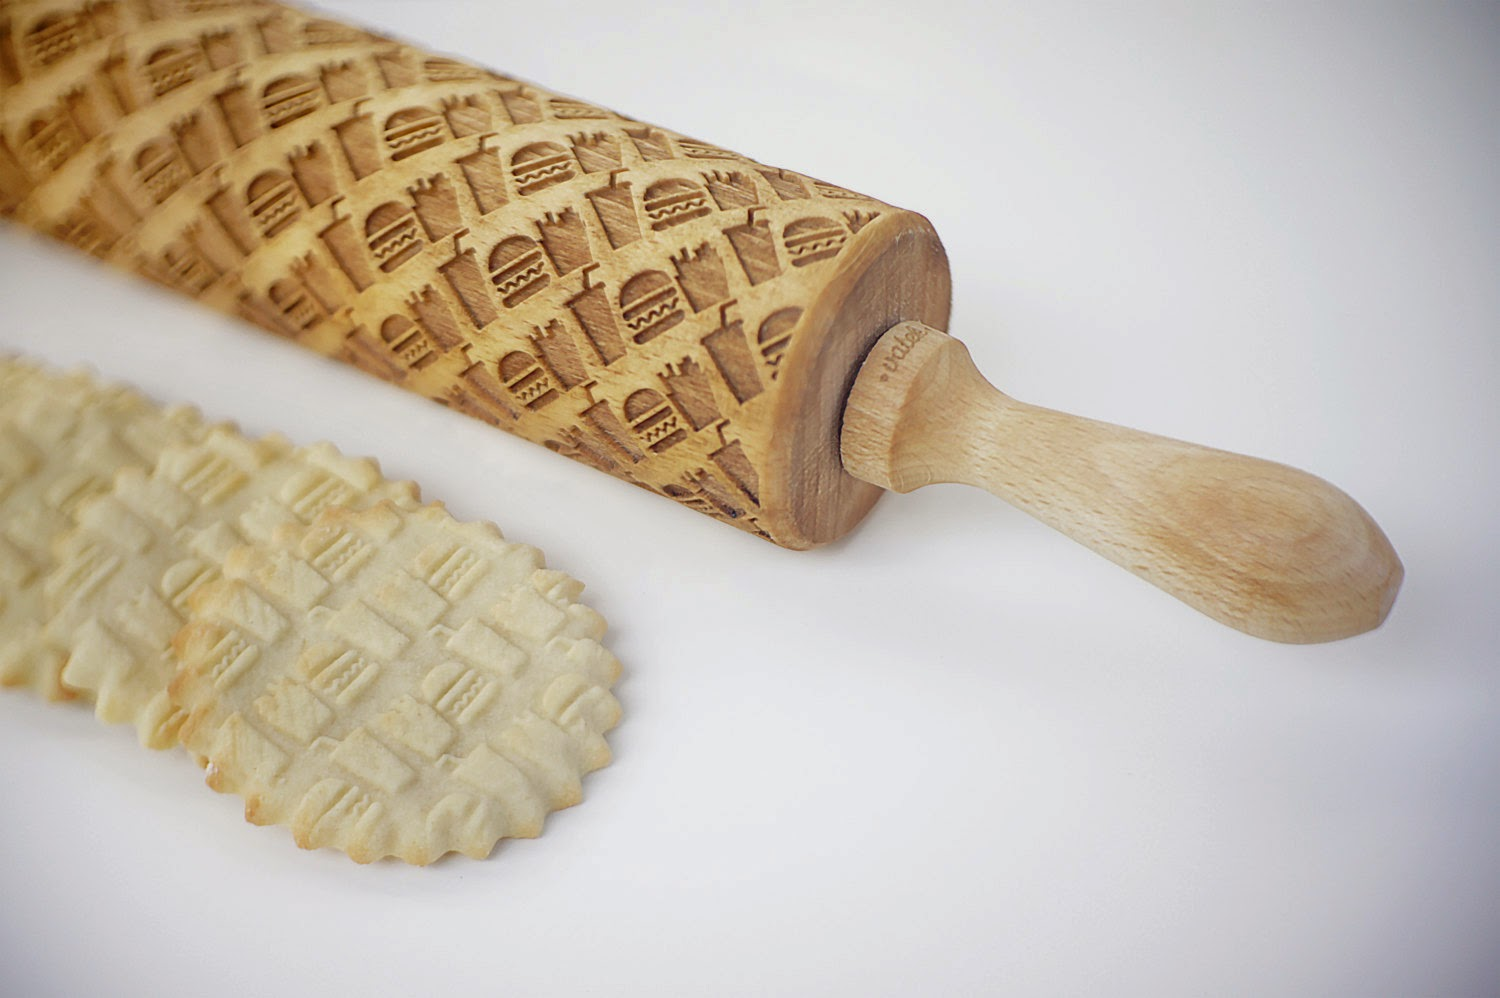 06-Zuzia-Kozerska-Rolling-Pin-for-Food-Stamp-Designs-www-designstack-co